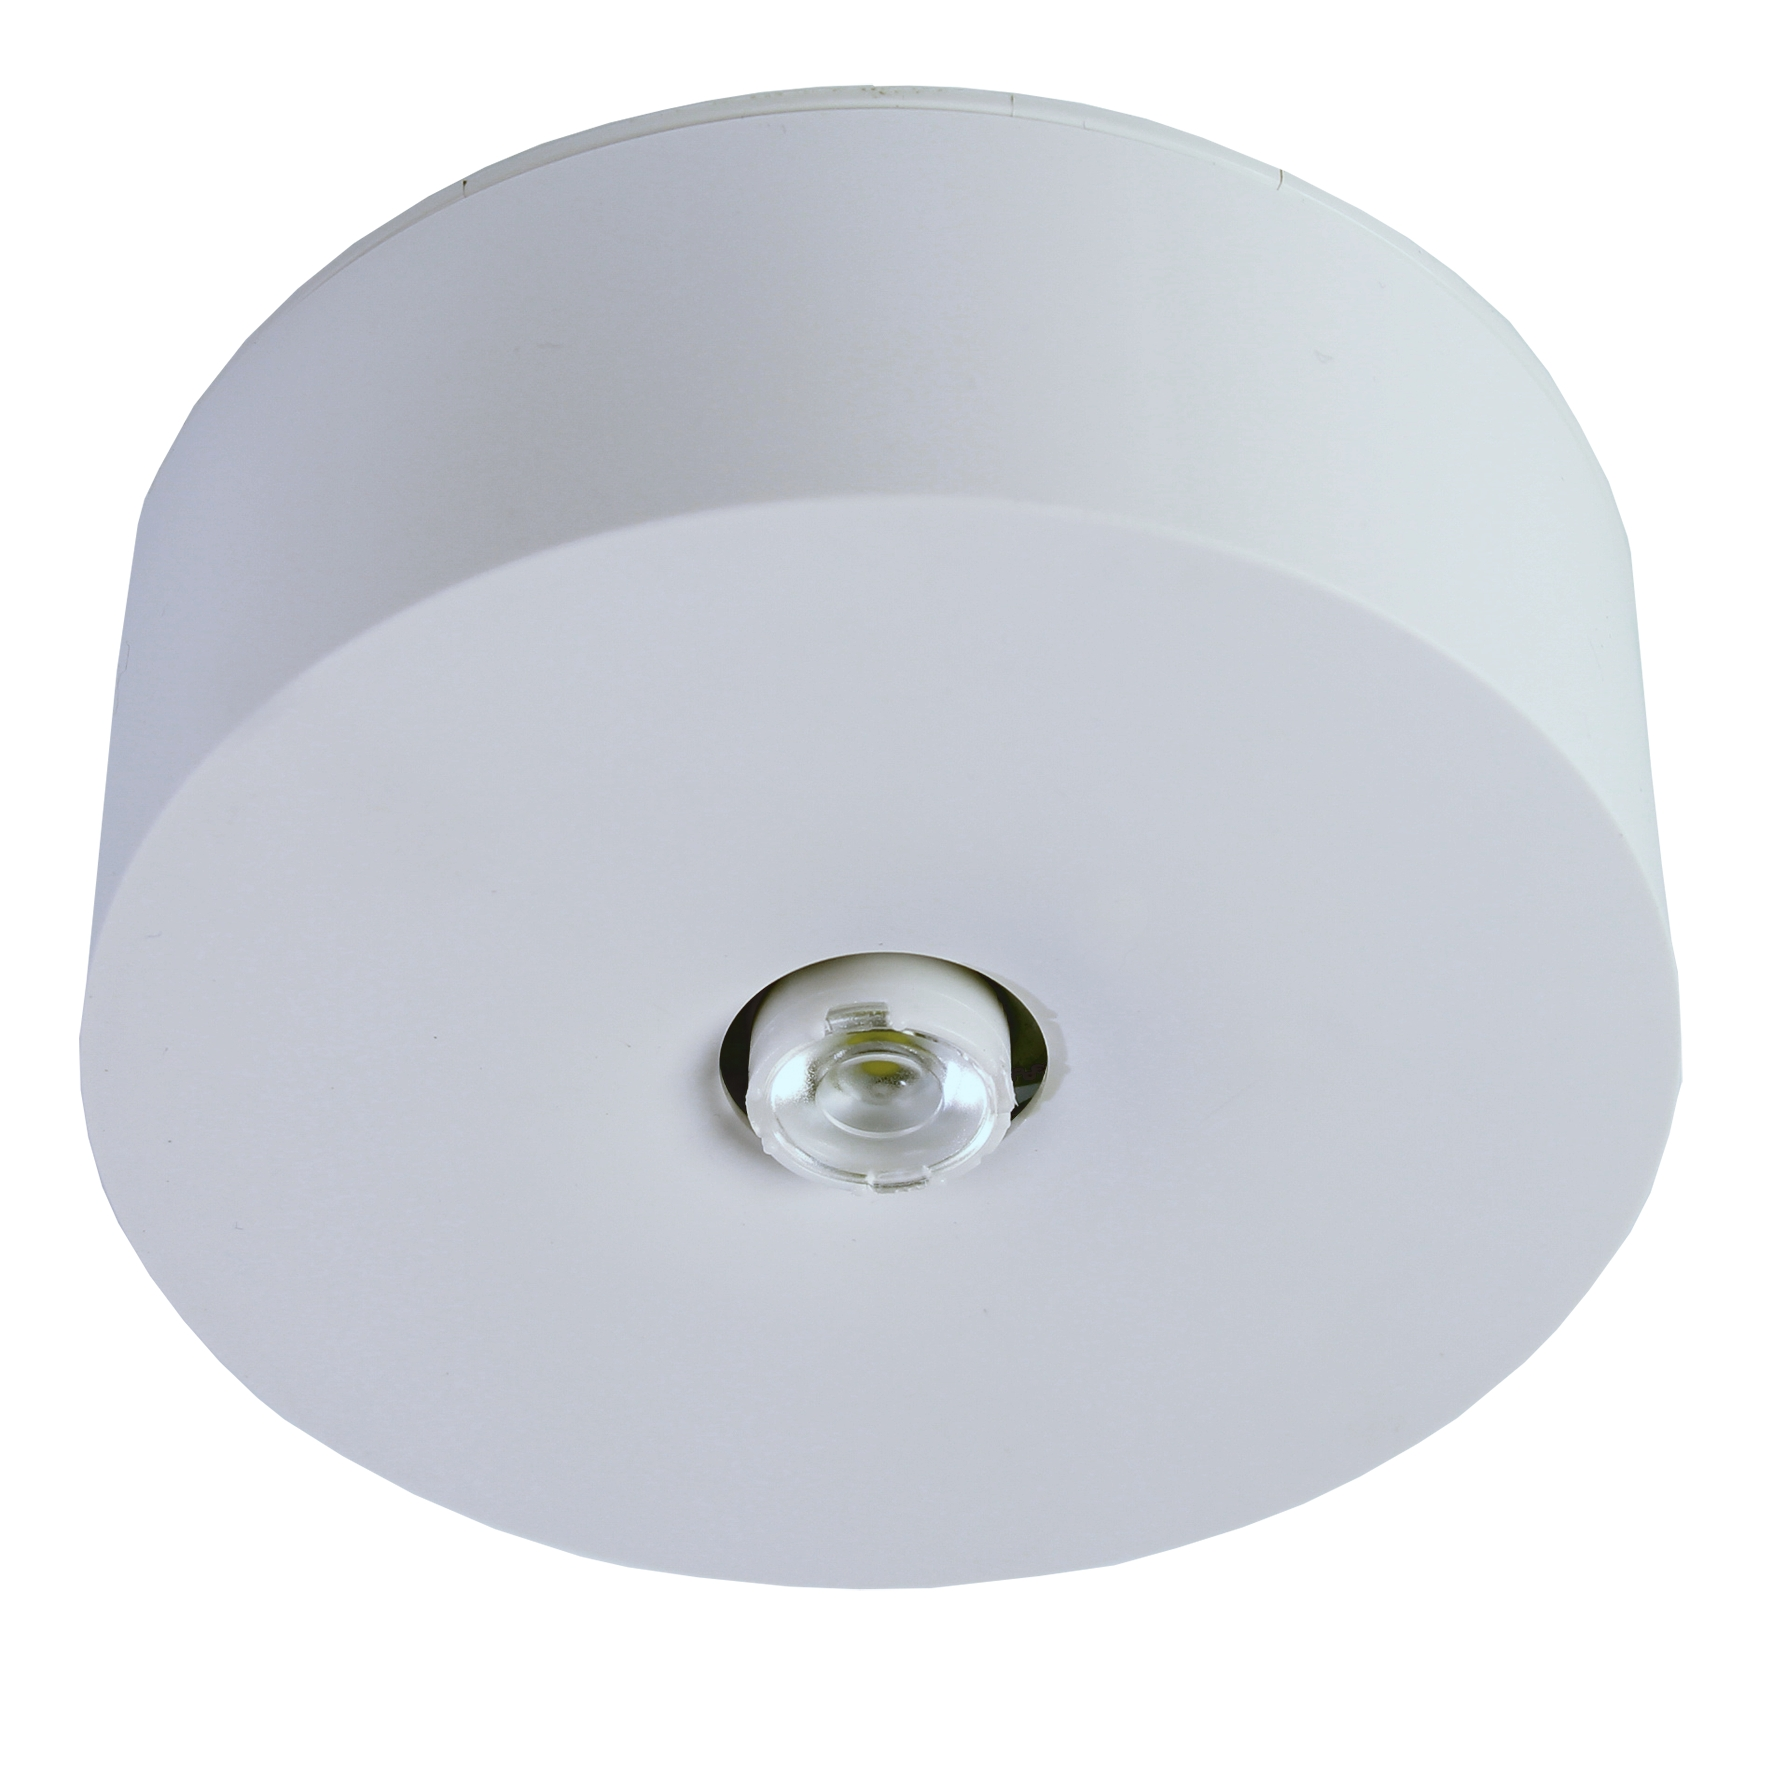 Notleuchte IL Wireless 1x3W ERT-LED 8h 230VAC Spot